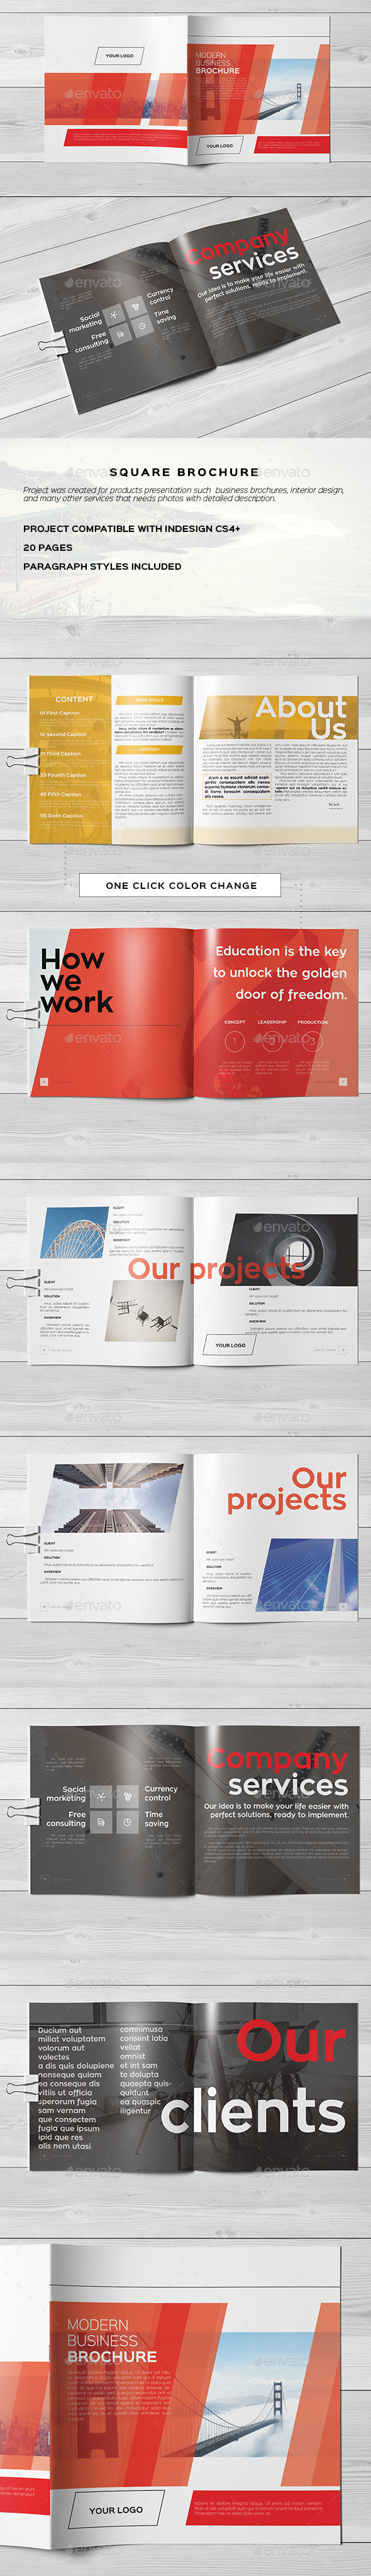 Square Modern Business Brochure - Corporate Brochures